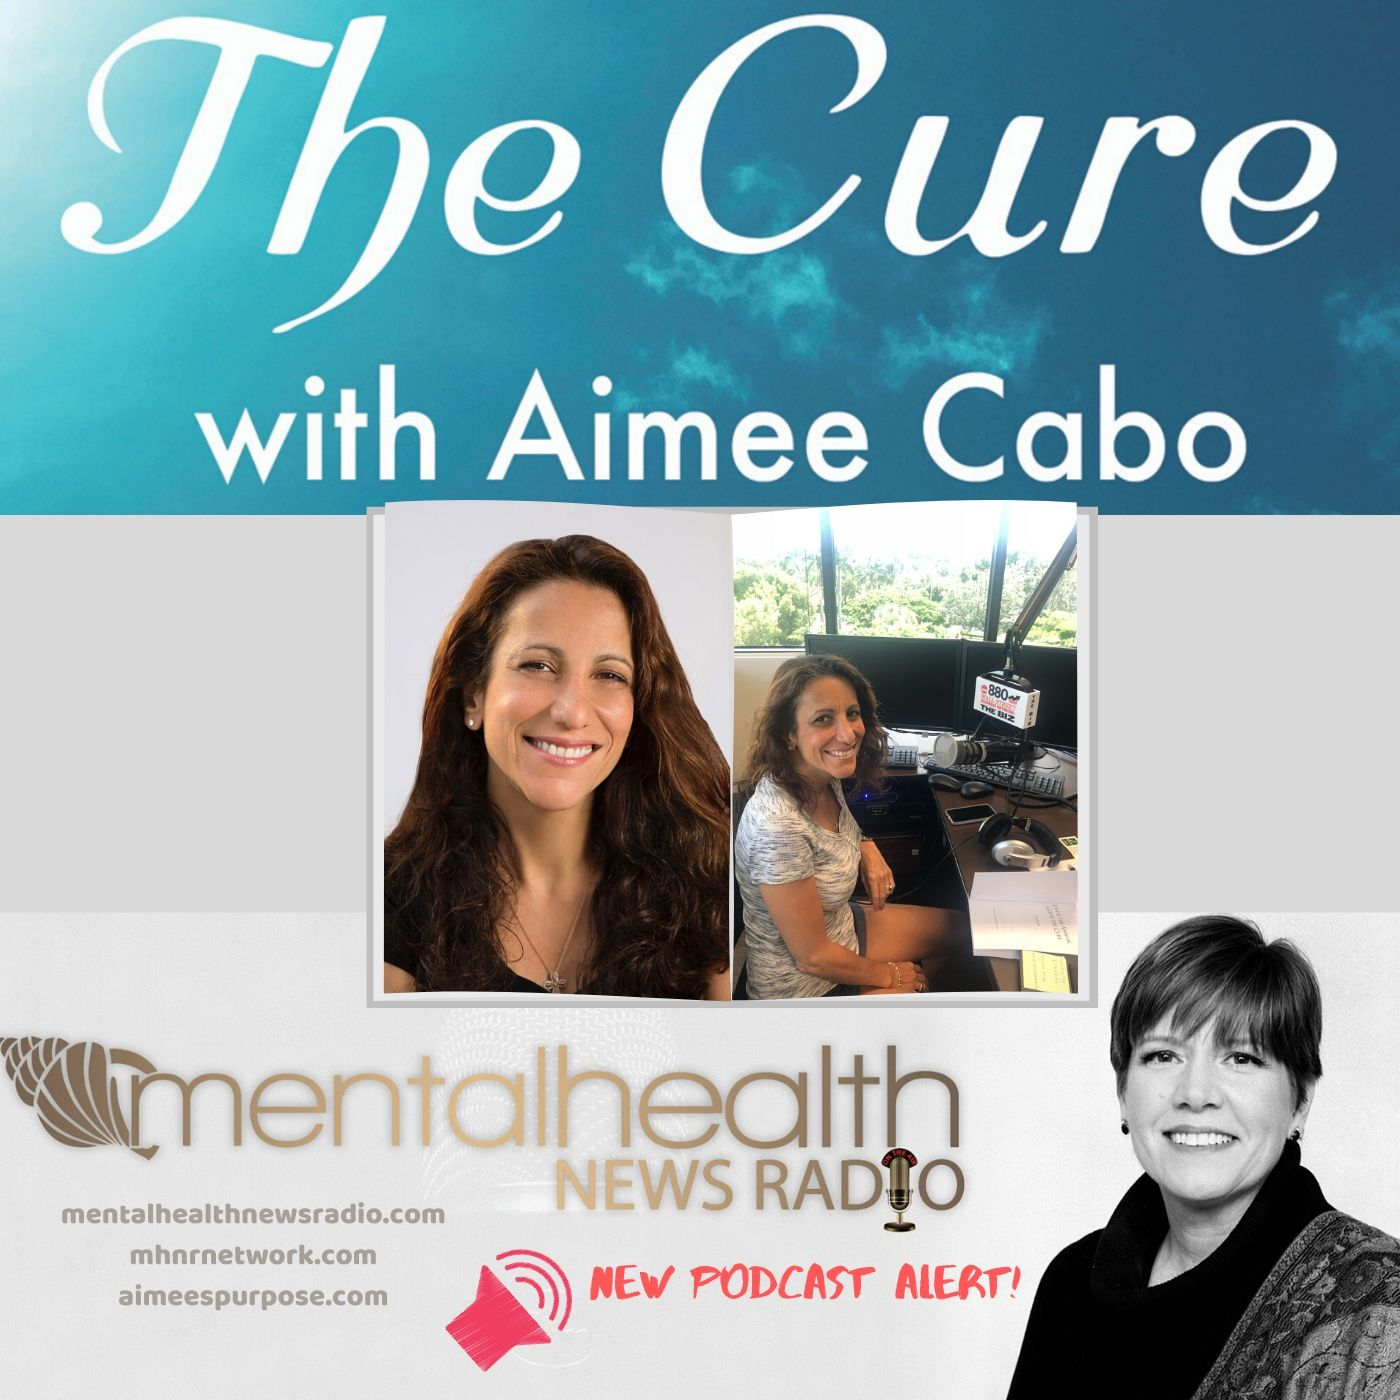 Mental Health News Radio - The Cure with Aimee Cabo